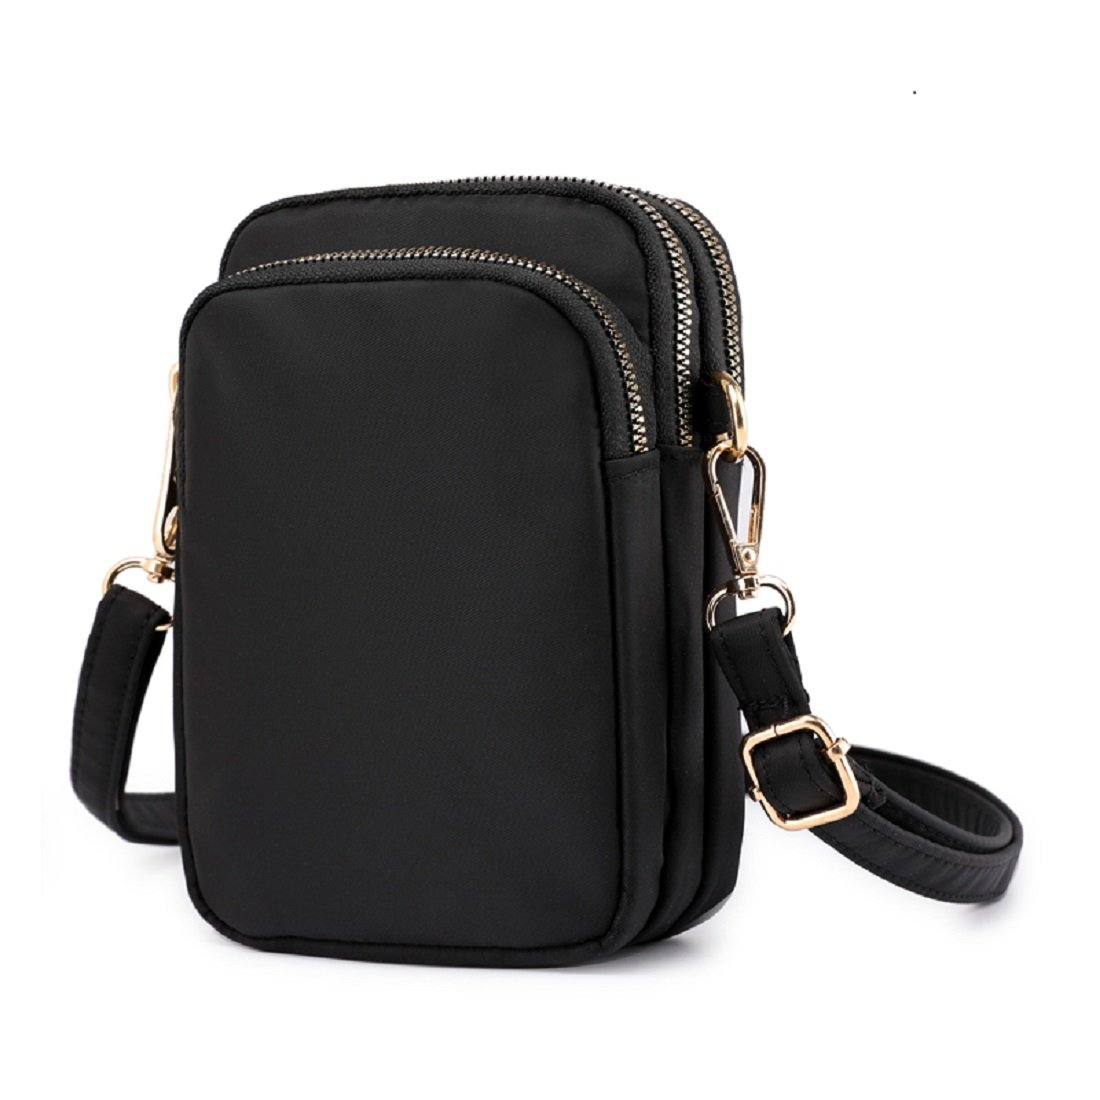 Cell Phone Purse Waterproof Nylon Small Crossbody Shoulder Bag Smartphone Holder Wallet For Women (Black)